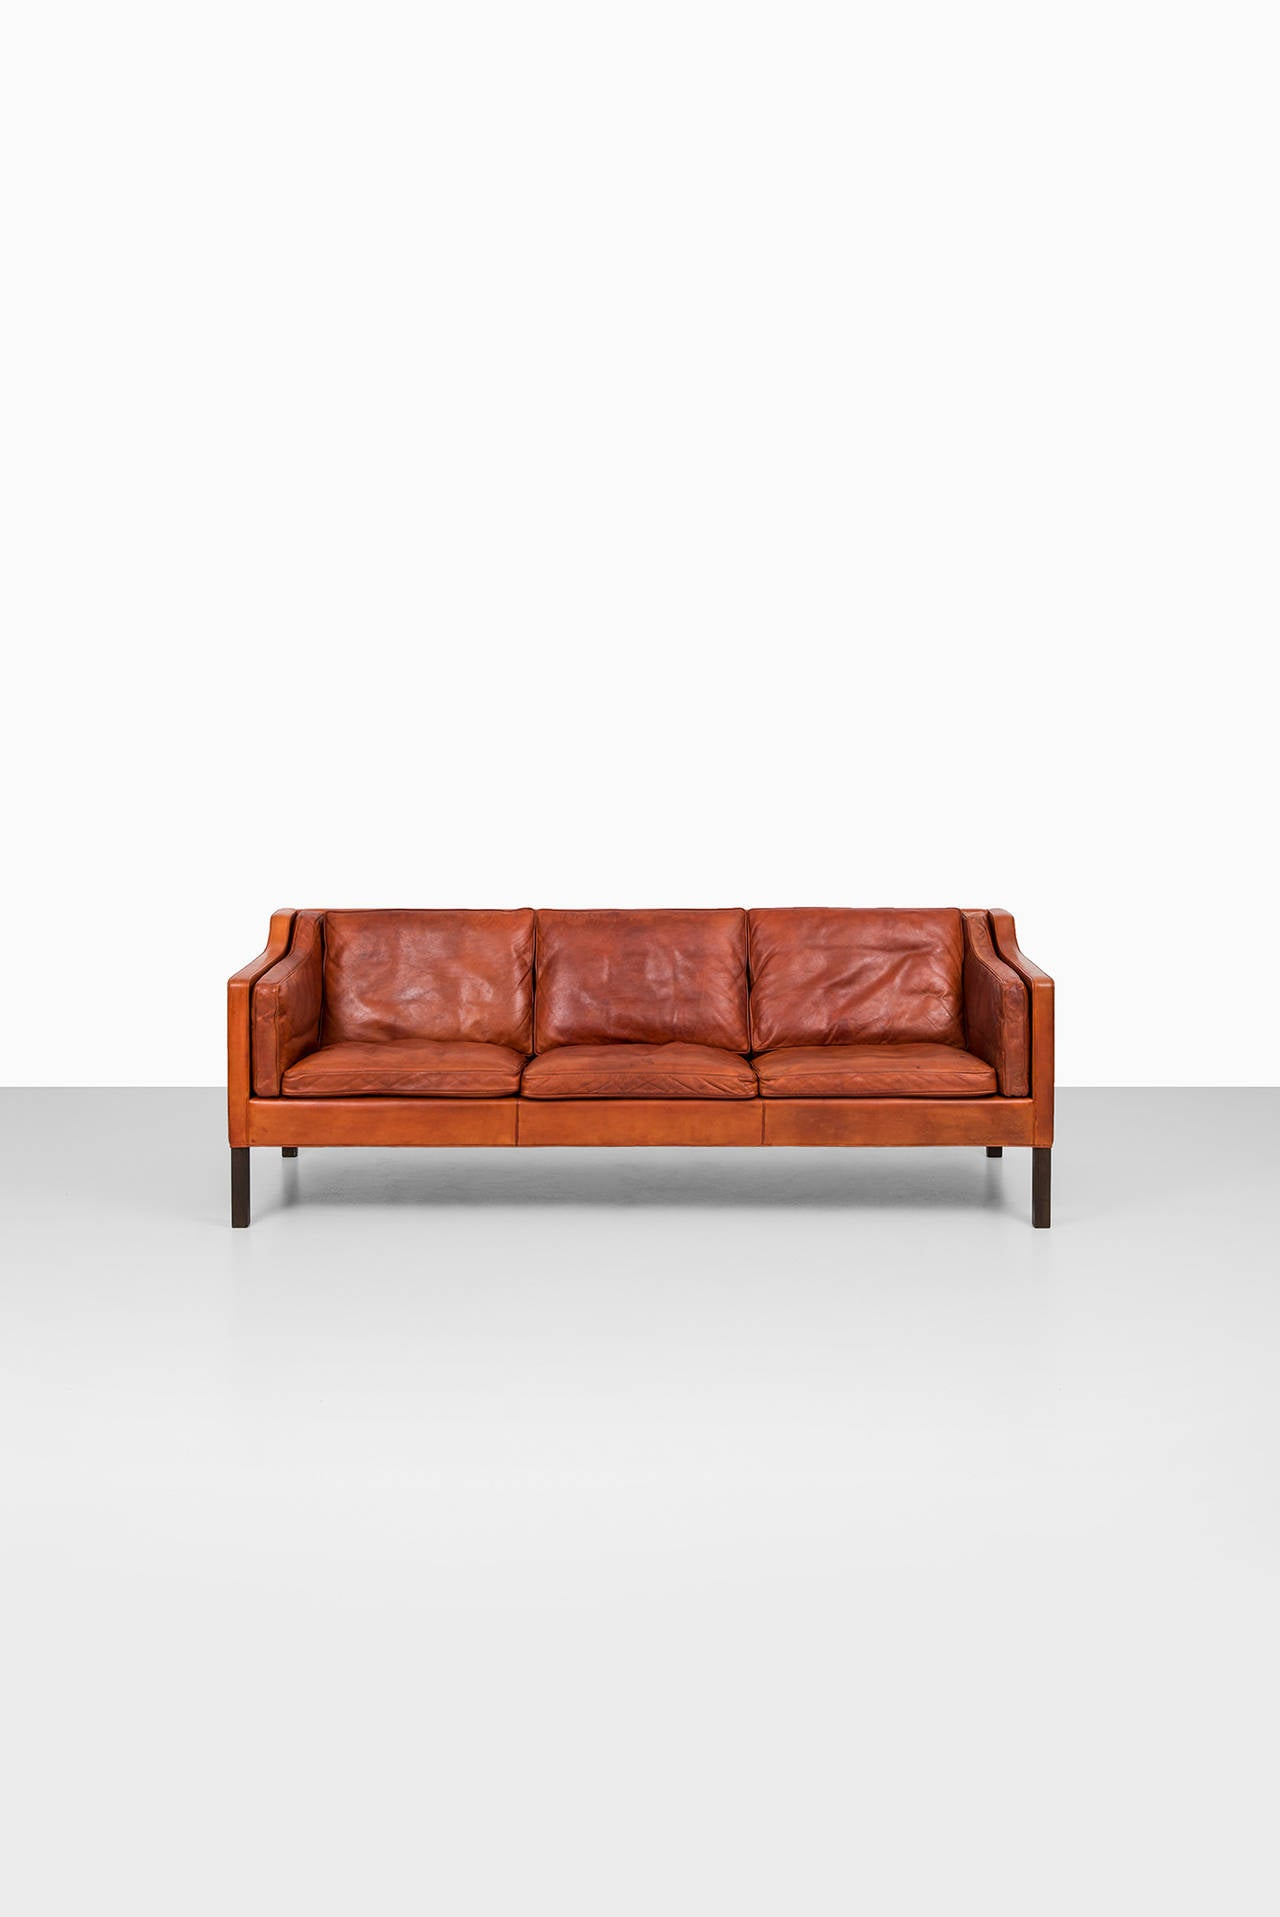 B¸rge Mogensen 2213 Leather Sofa by Fredericia Stolefabrik in